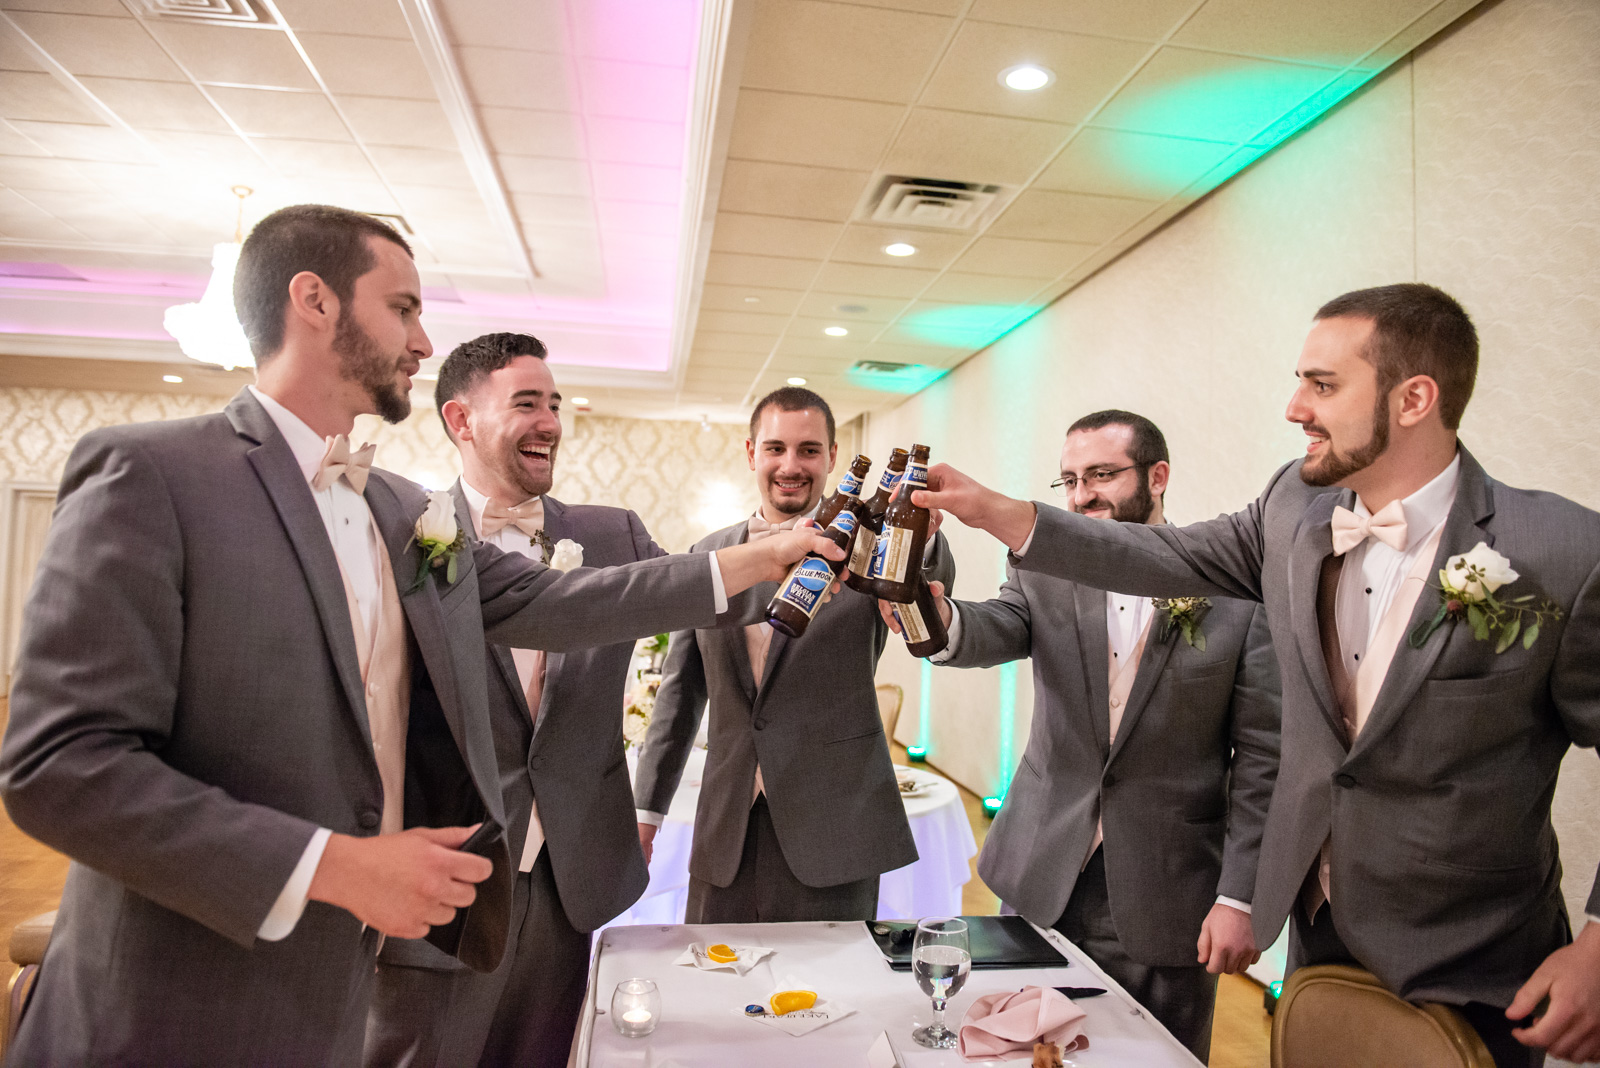 The groomsmen, cracking open some cold ones.